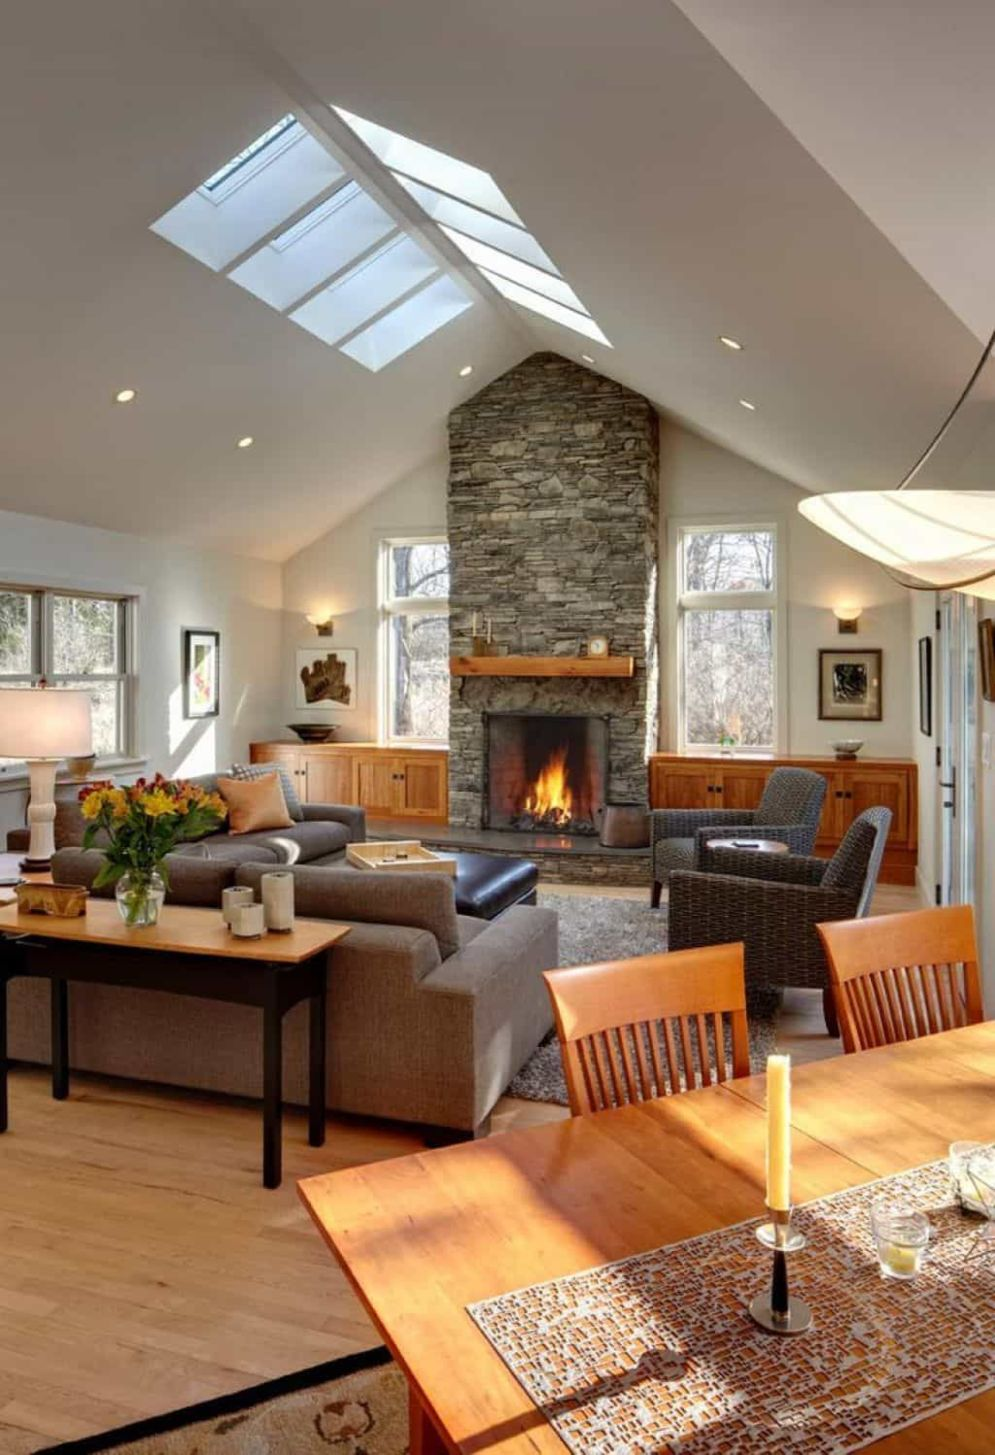 Classic home style with cathedral ceiling which looks gorgeous and grand along with classy interior taste Image 21